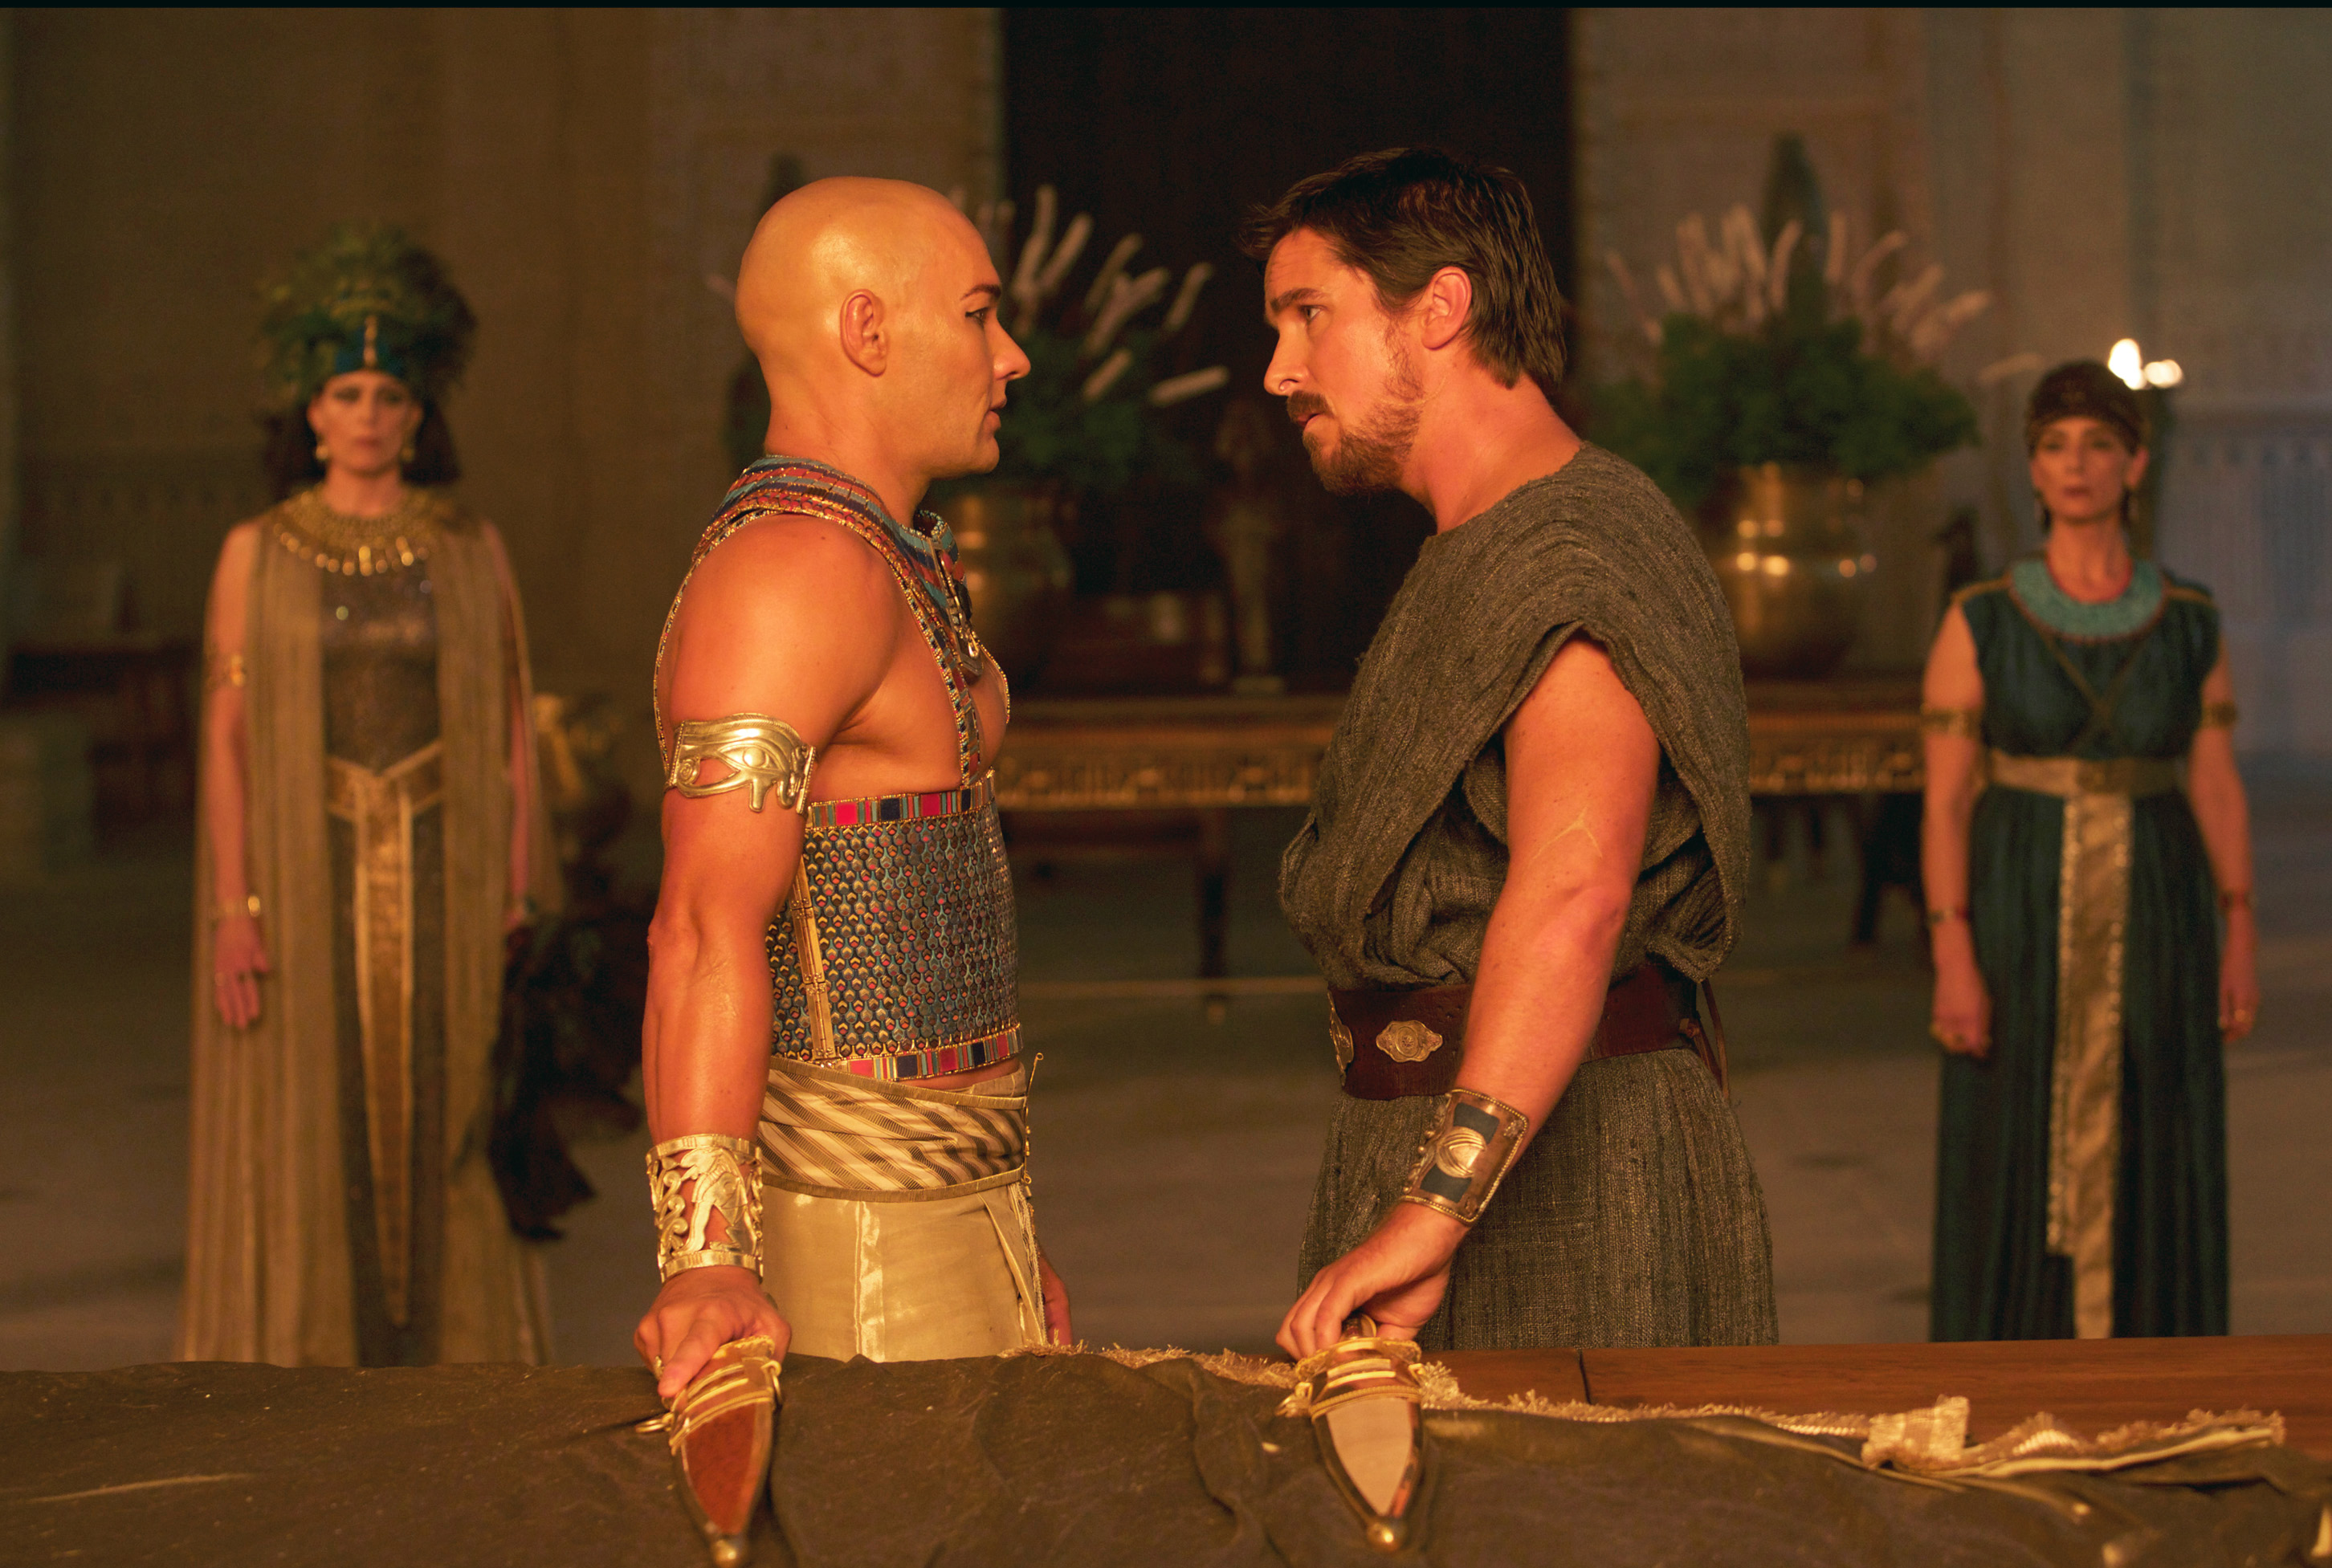 Moses returns to silver screen in Ridley Scott's 'Exodus'